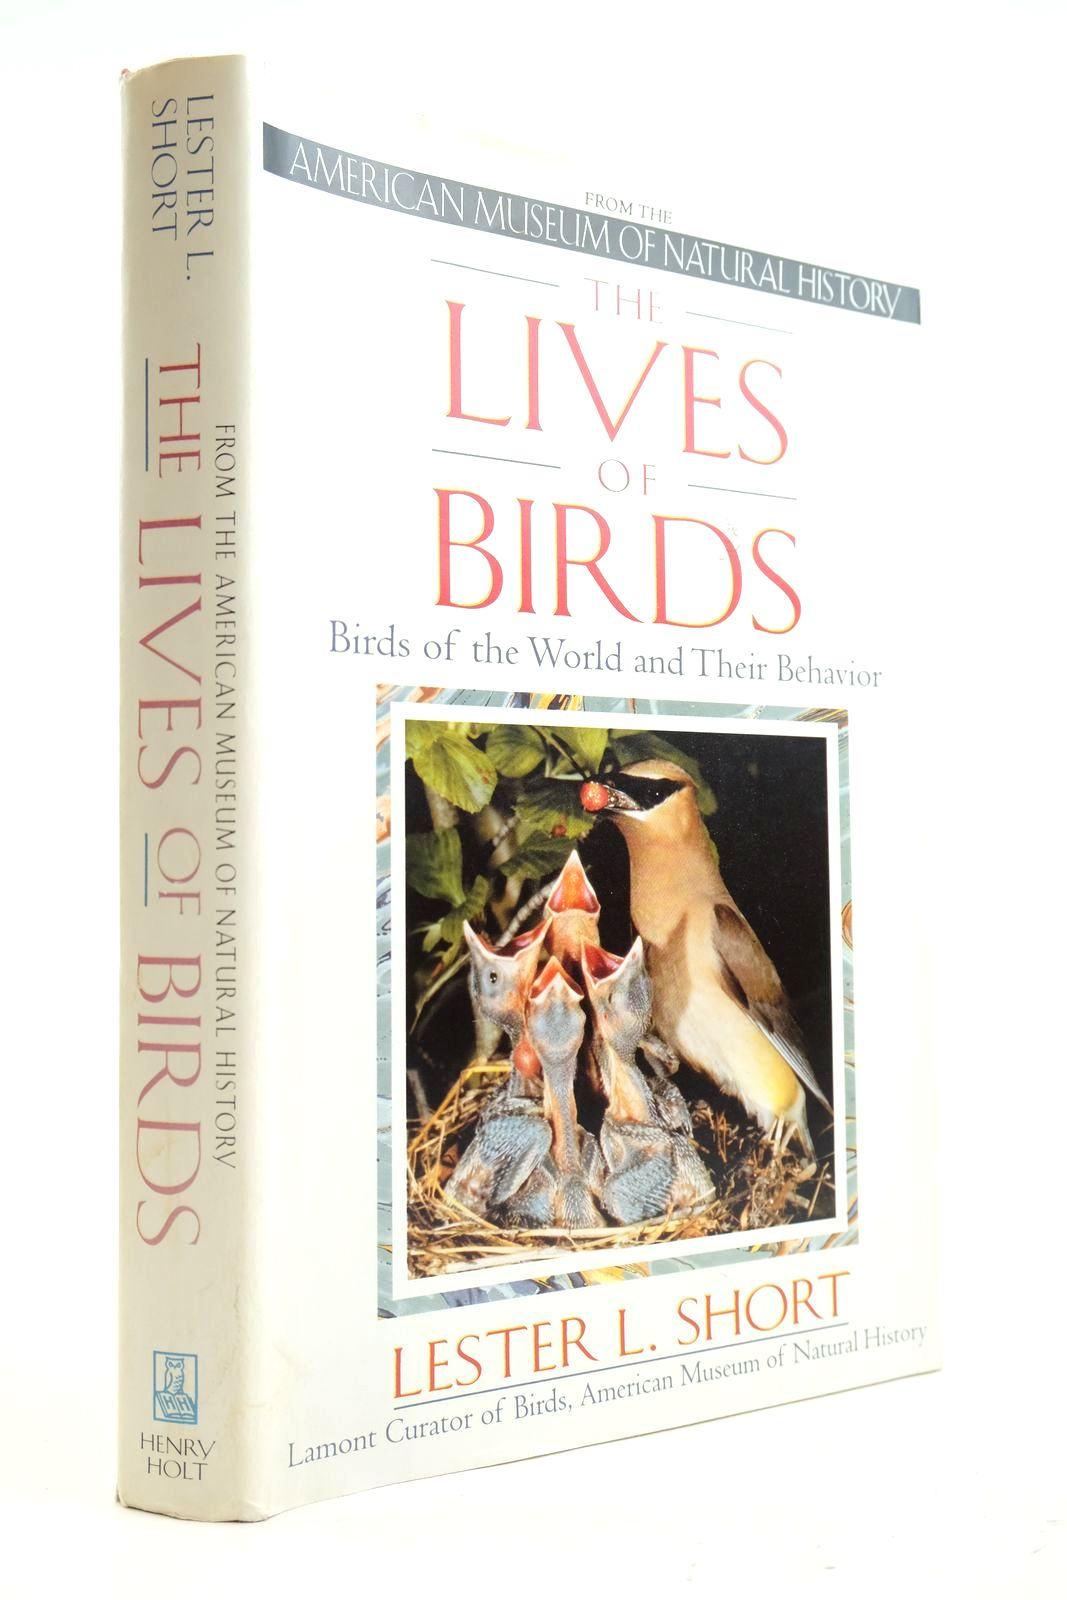 Photo of THE LIVES OF BIRDS BIRDS OF THE WORLD AND THEIR BEHAVIOR- Stock Number: 2133079